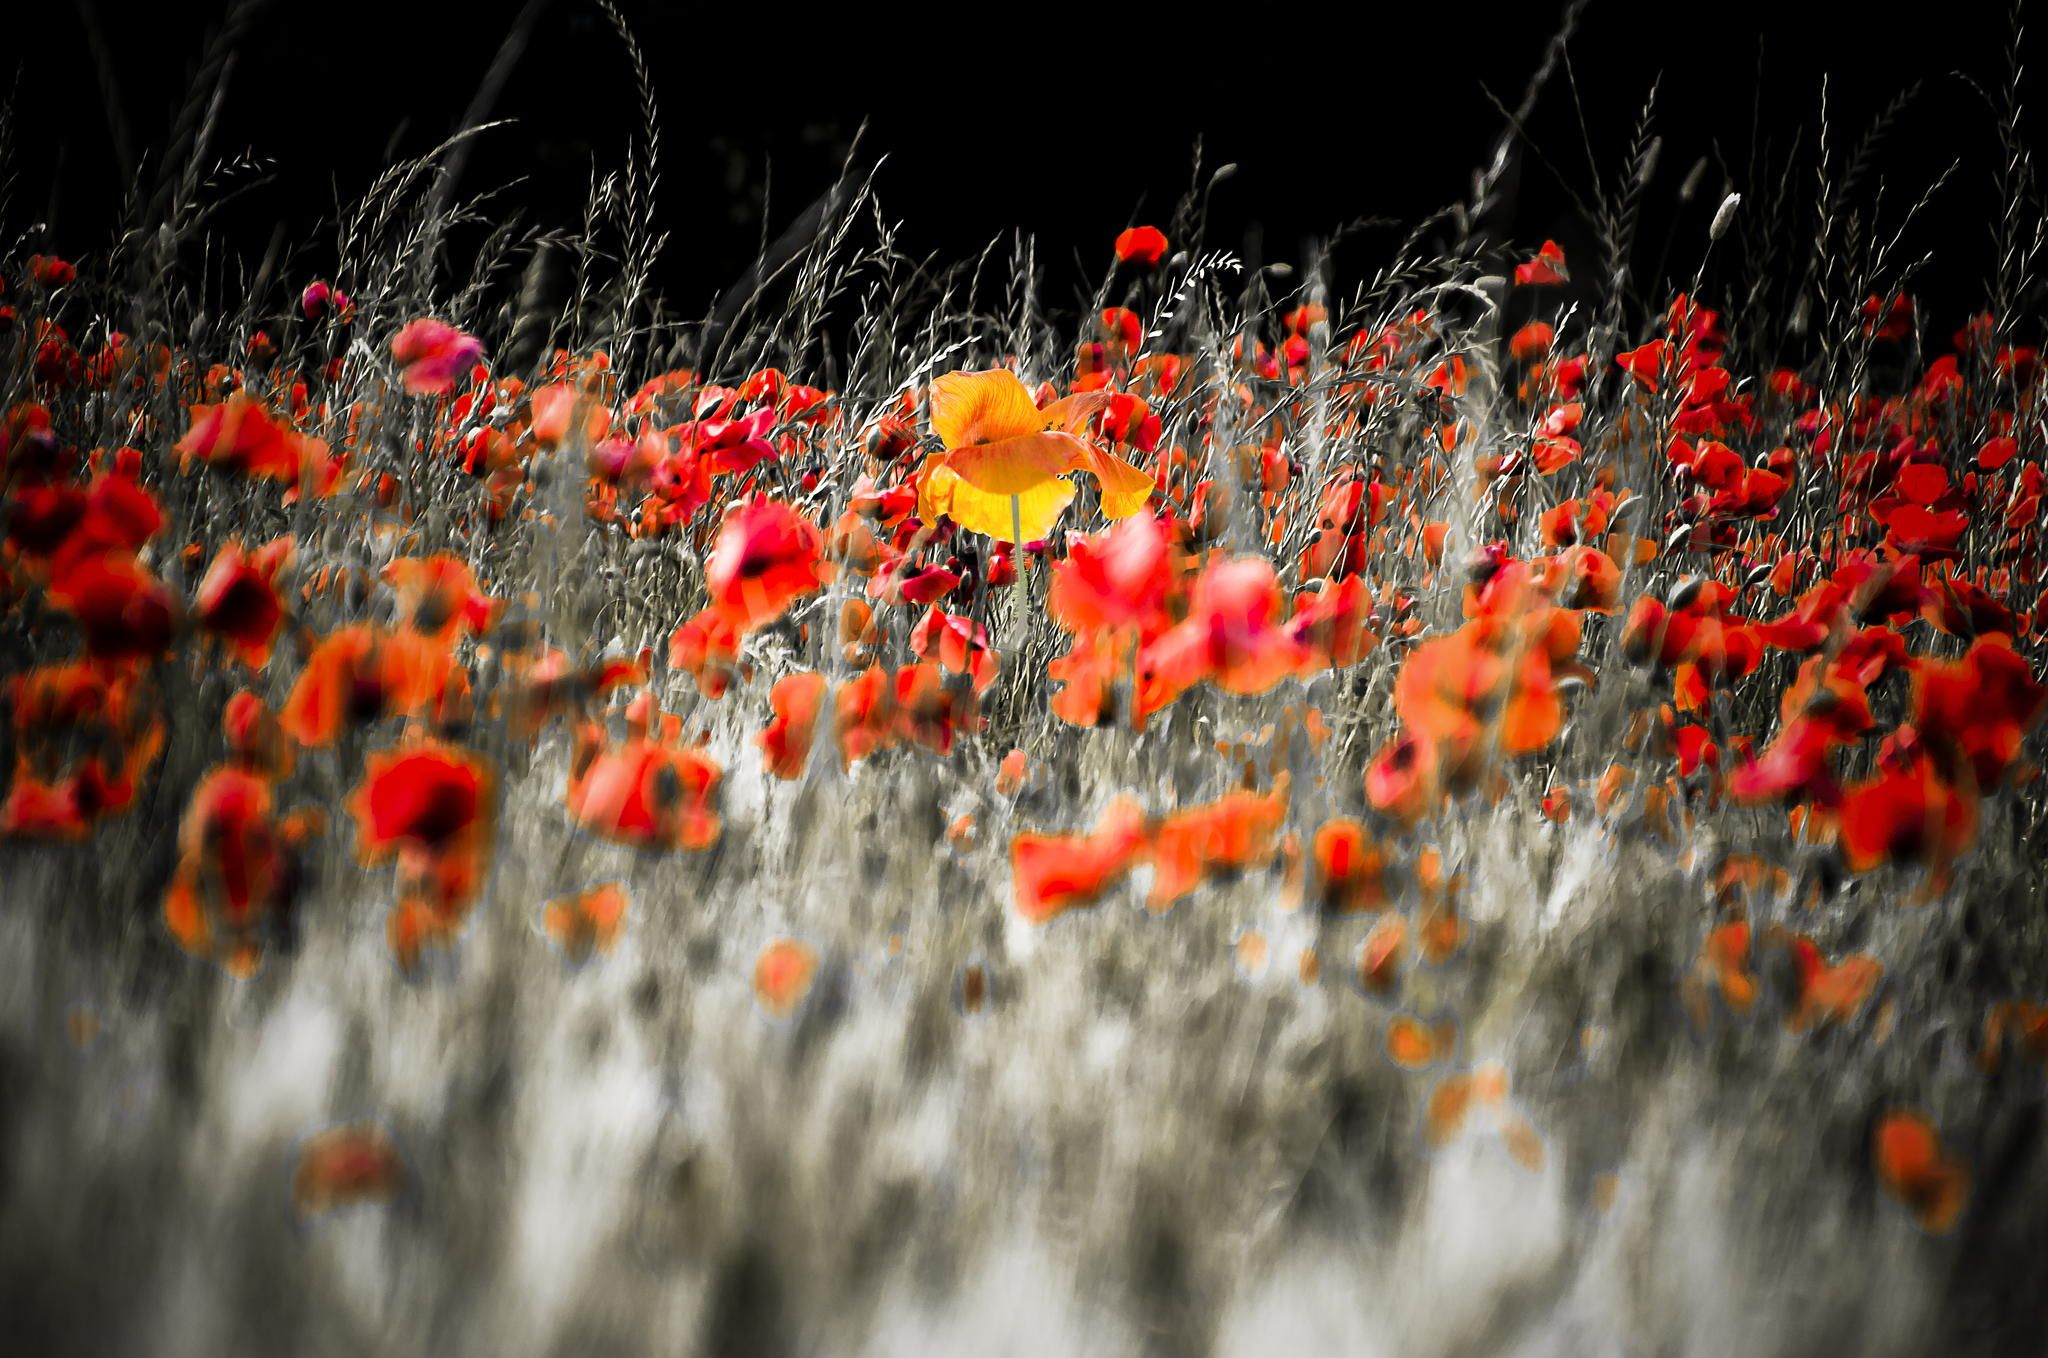 Poppies b&w and colors by Nicodemo Quaglia on 500px